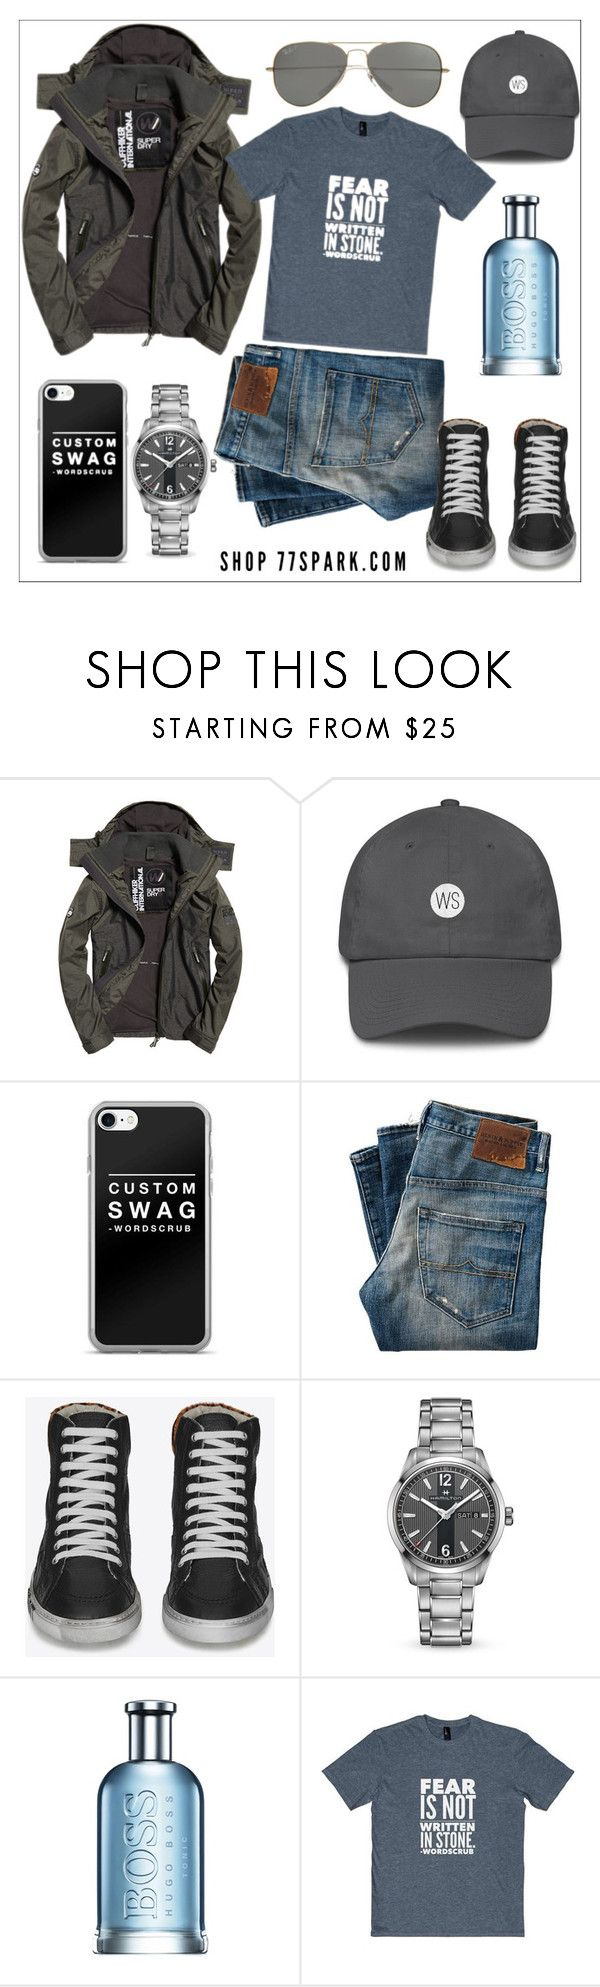 """""""77SPARK CONTEST"""" by celine-diaz-1 ❤ liked on Polyvore featuring Superdry, Yves Saint Laurent, Hamilton, HUGO, Parasol, men's fashion and menswear"""